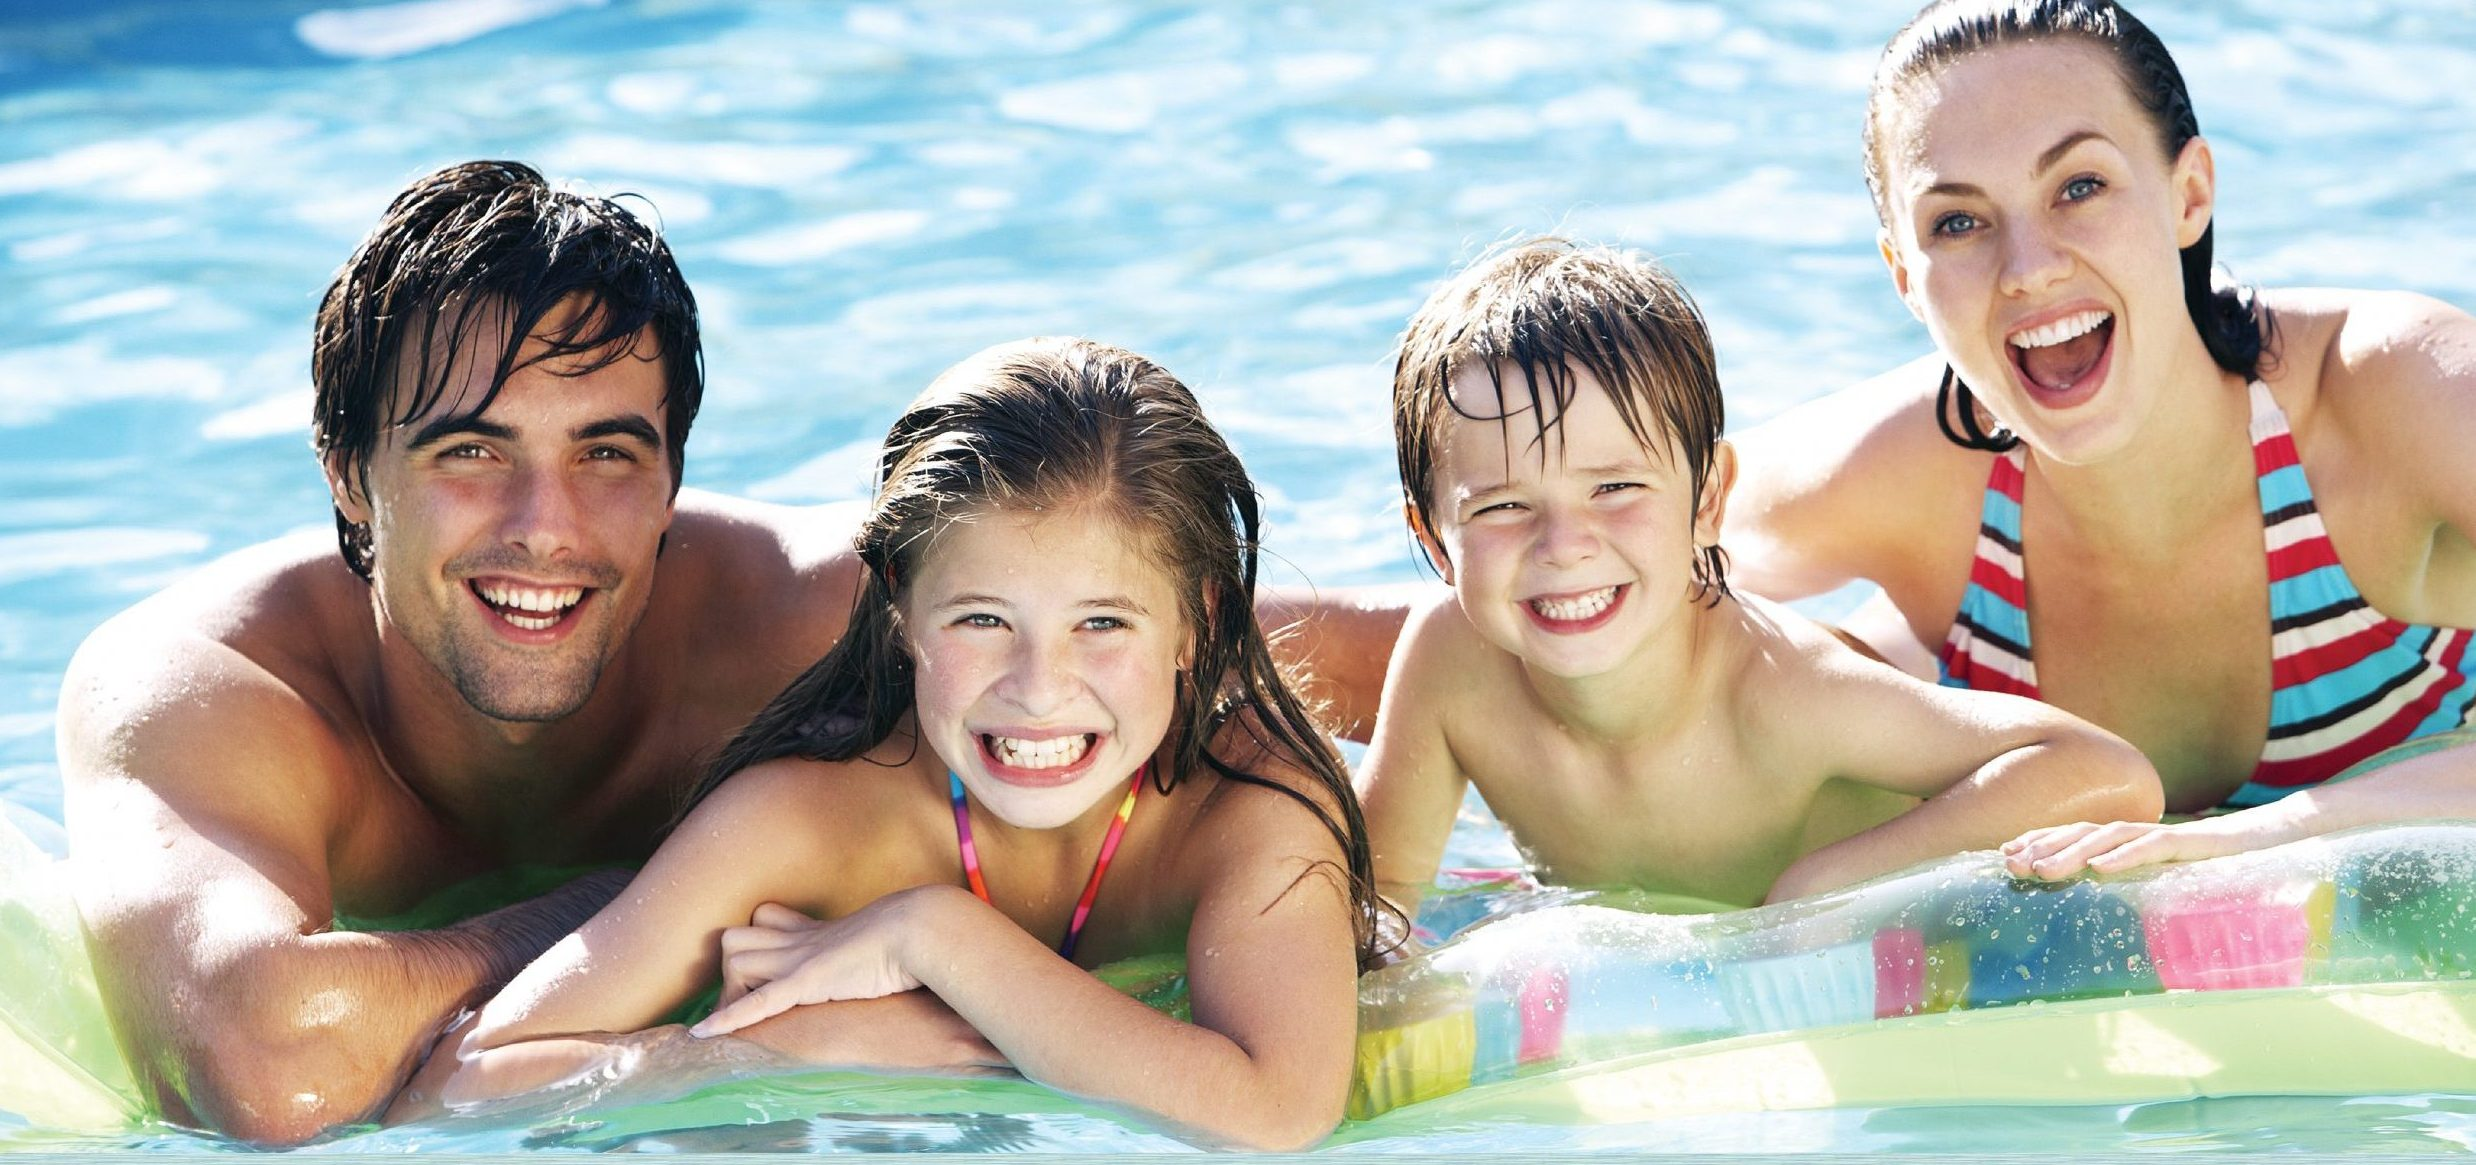 6 Reasons Every Parent Should Invest in Children's Swimming Lessons